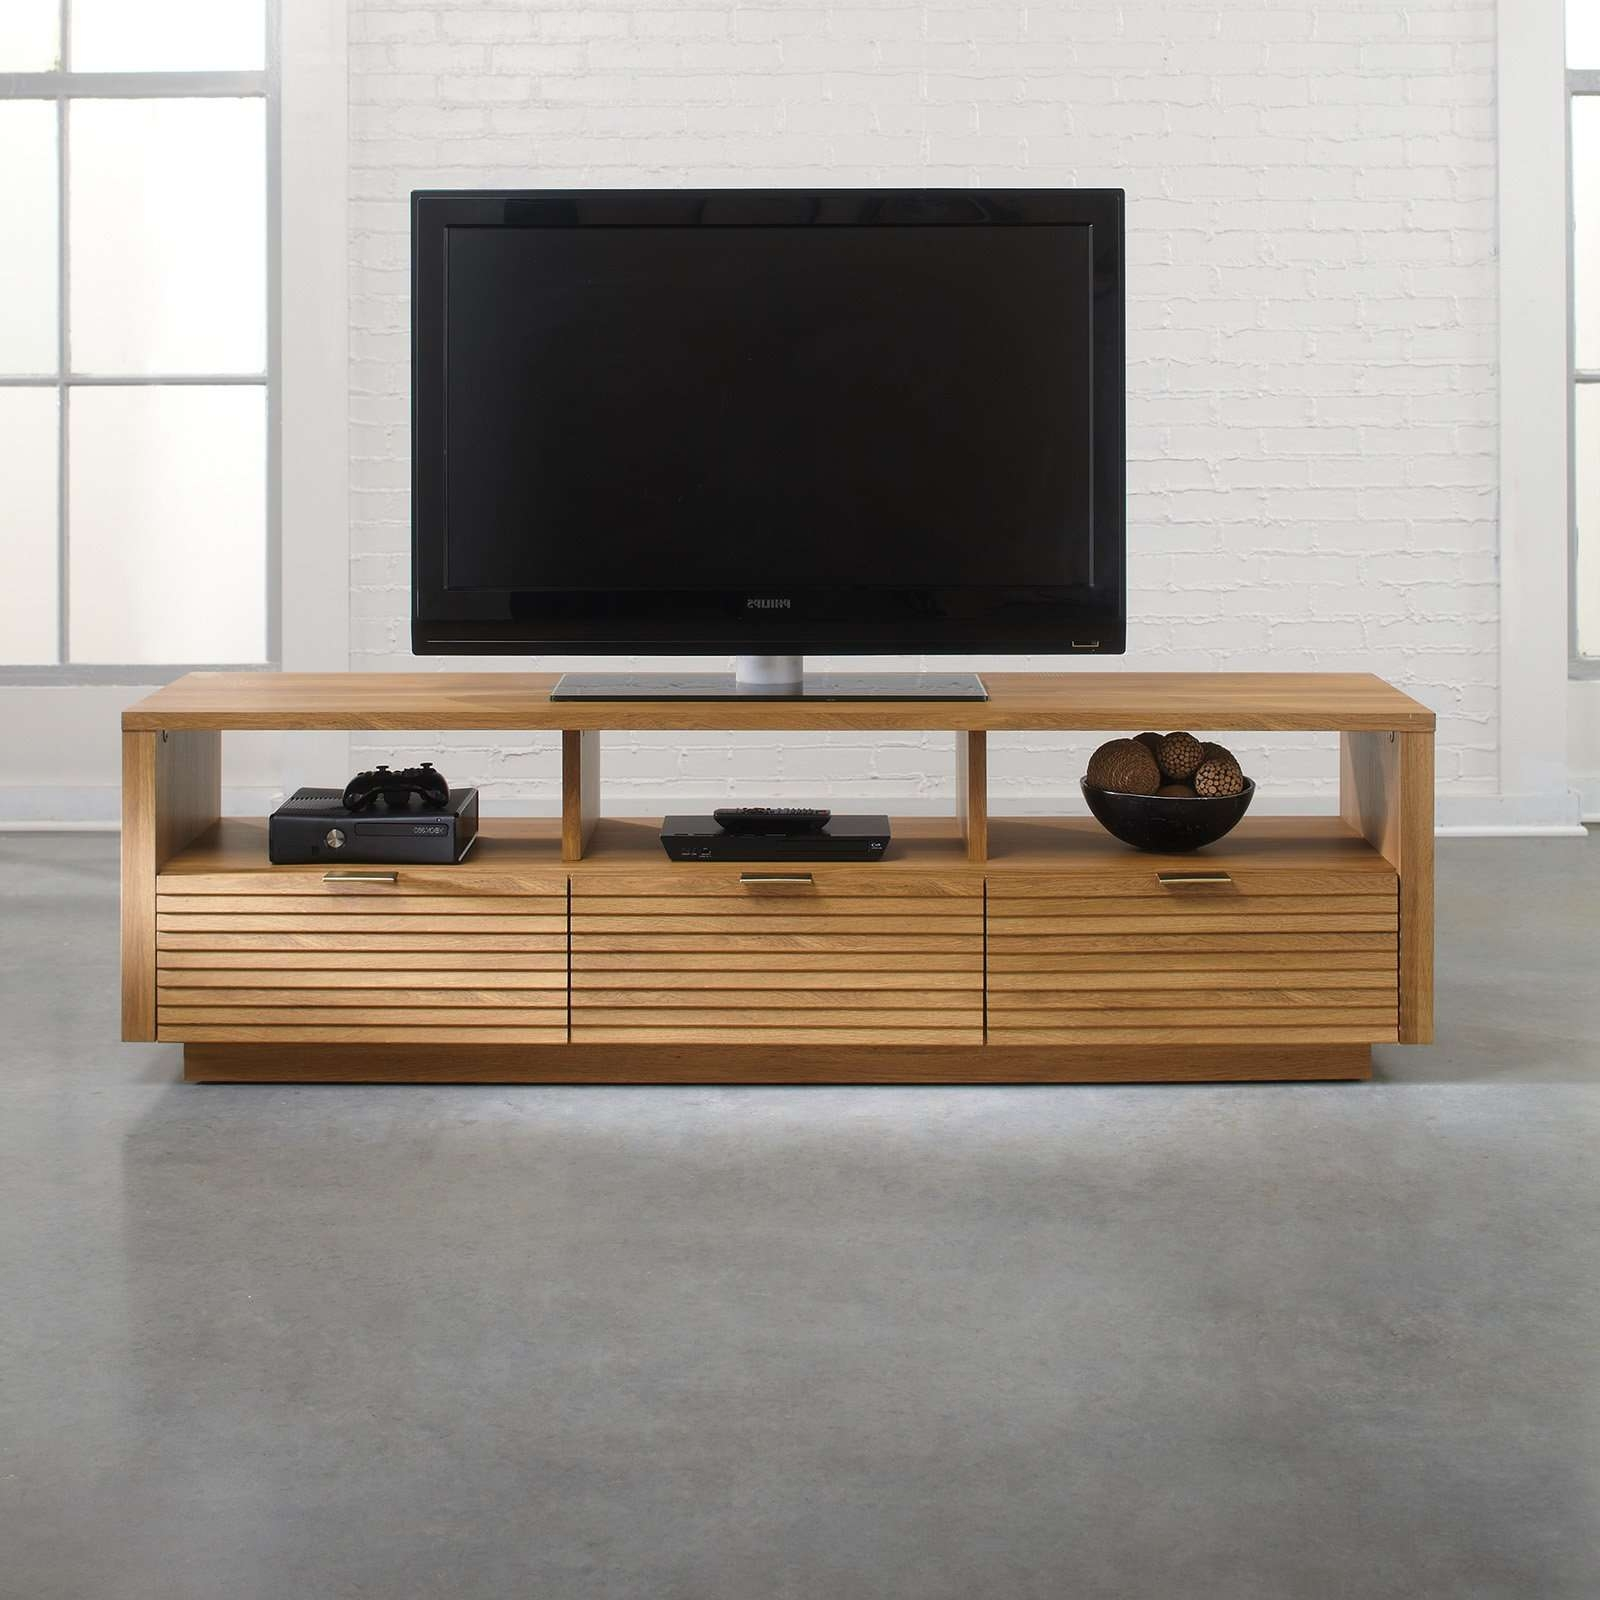 Belham Living Carter Mid Century Modern Tv Stand | Hayneedle Intended For Rectangular Tv Stands (View 2 of 15)